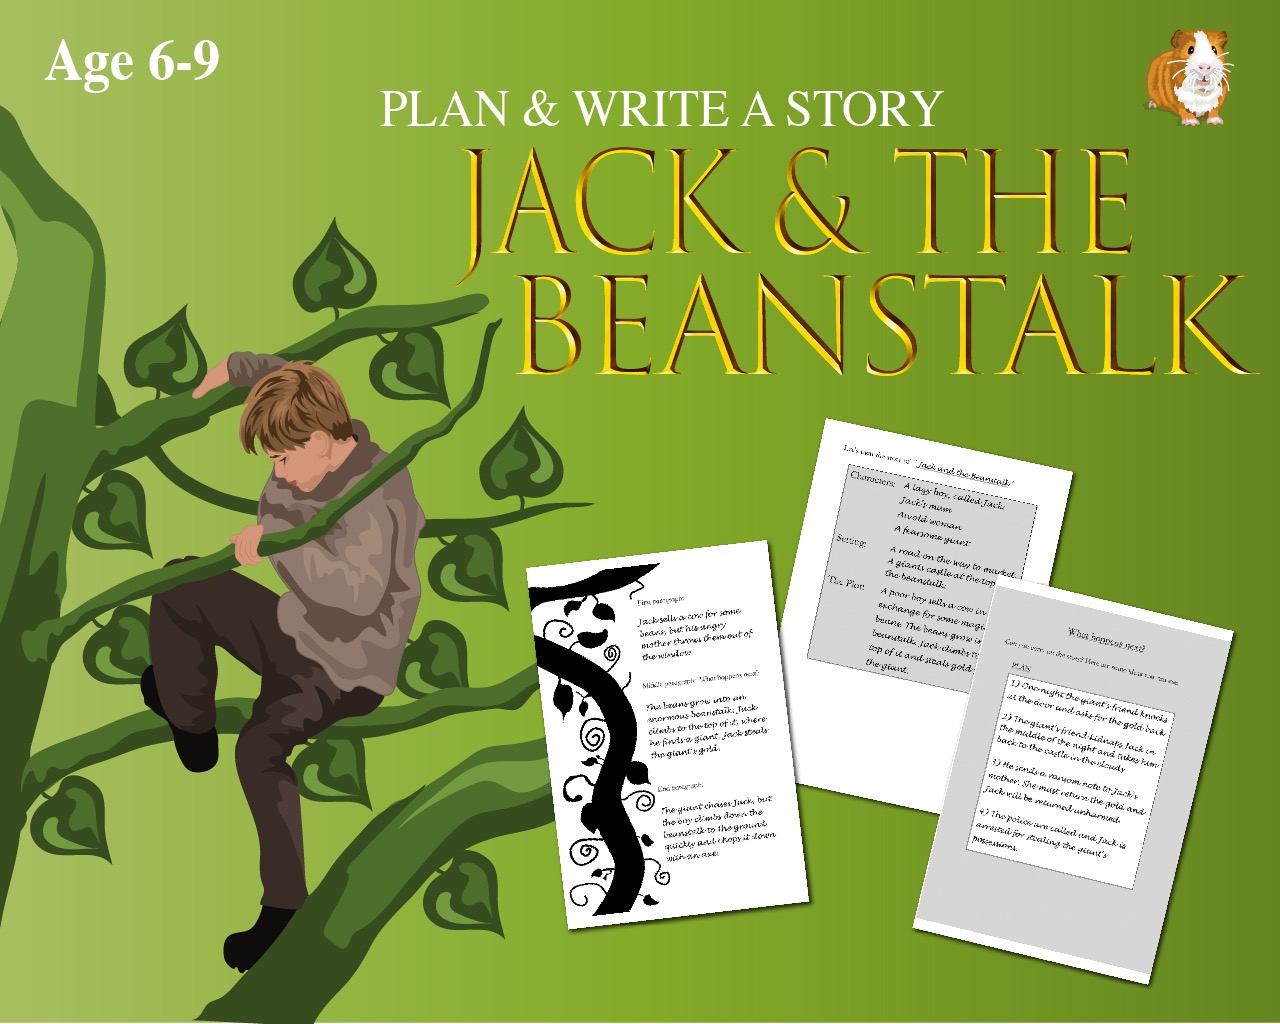 Plan And Write The Story Of 'Jack And The Beanstalk'  (6-9 years)